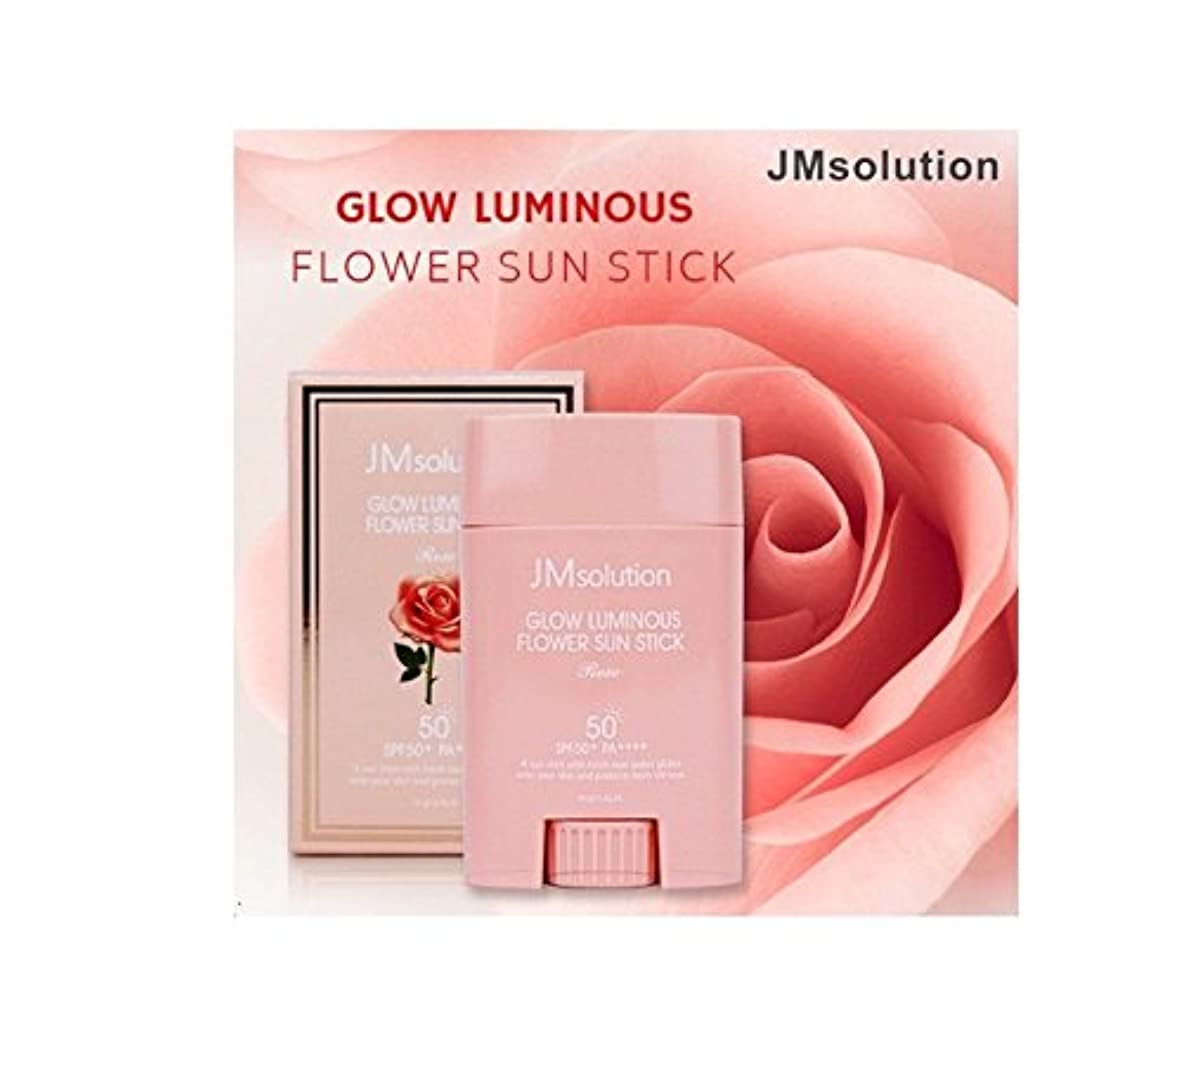 JM Solution Glow Luminous Flower Sun Stick Rose 21g (spf50 PA) 光る輝く花Sun Stick Rose